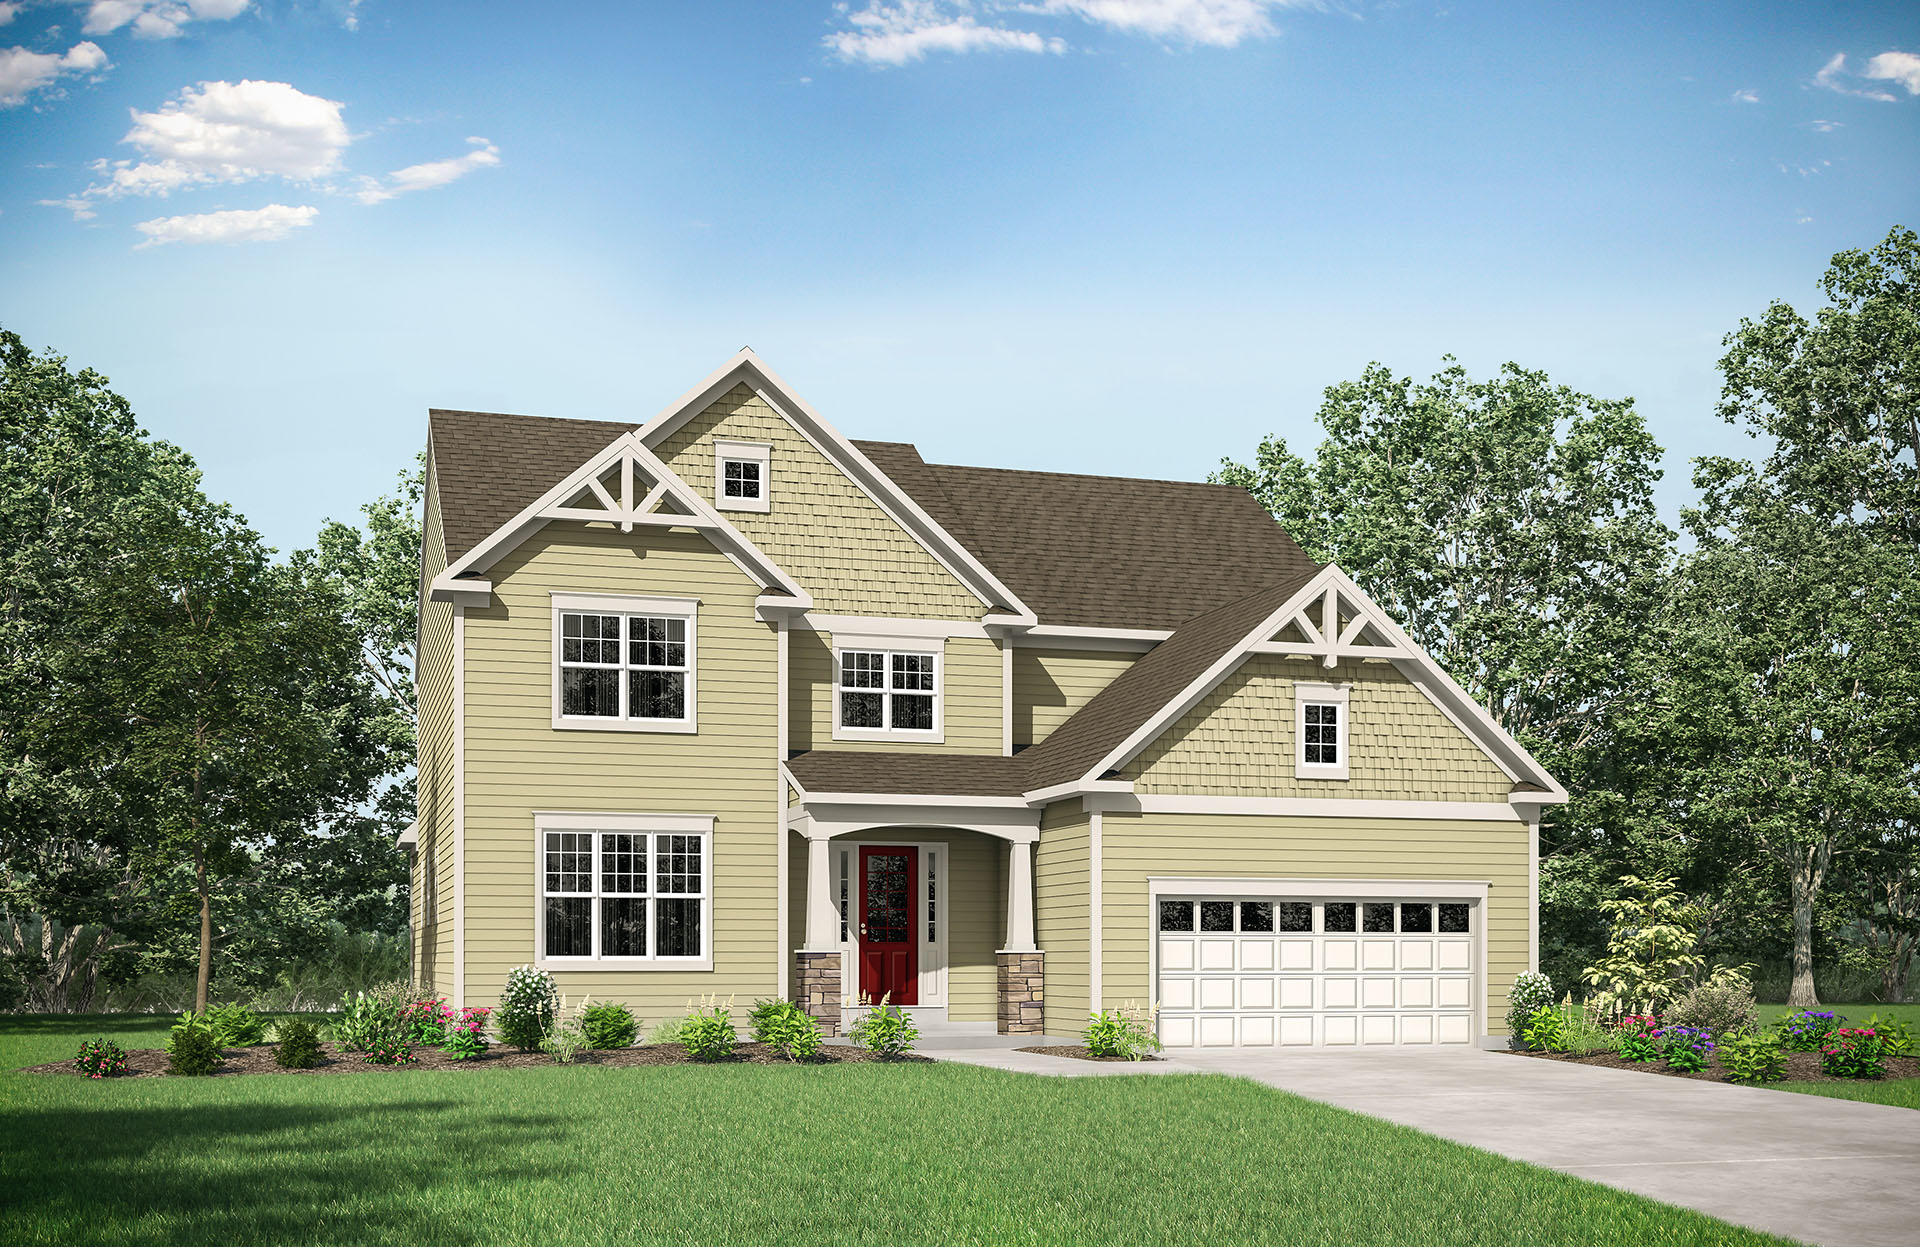 Rowan Plan, Frederick, MD 21704 - 4 Bed, 3.5 Bath Single-Family Home on centex home plans, green home plans, stilt home floor plans, white home plans, pulte home plans, nelson home plans,